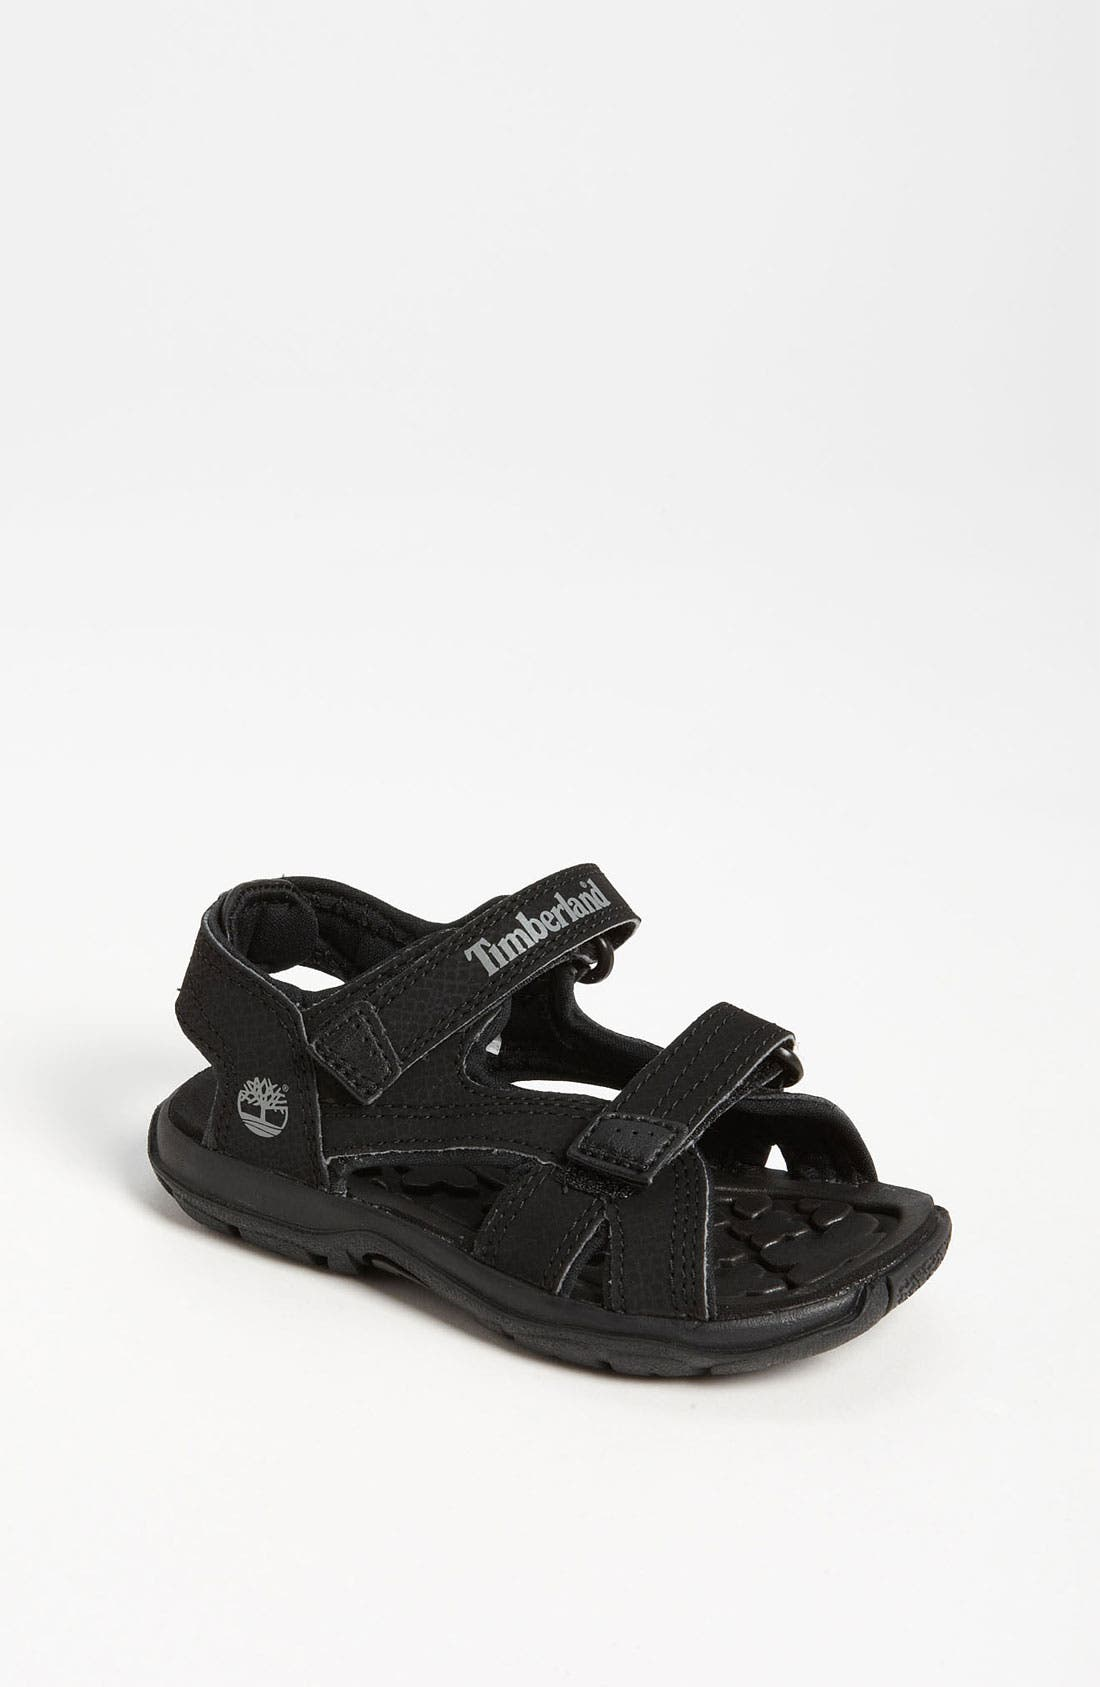 Main Image - Timberland 'Mad River' Sandal (Baby, Walker, Toddler, Little Kid & Big Kid)